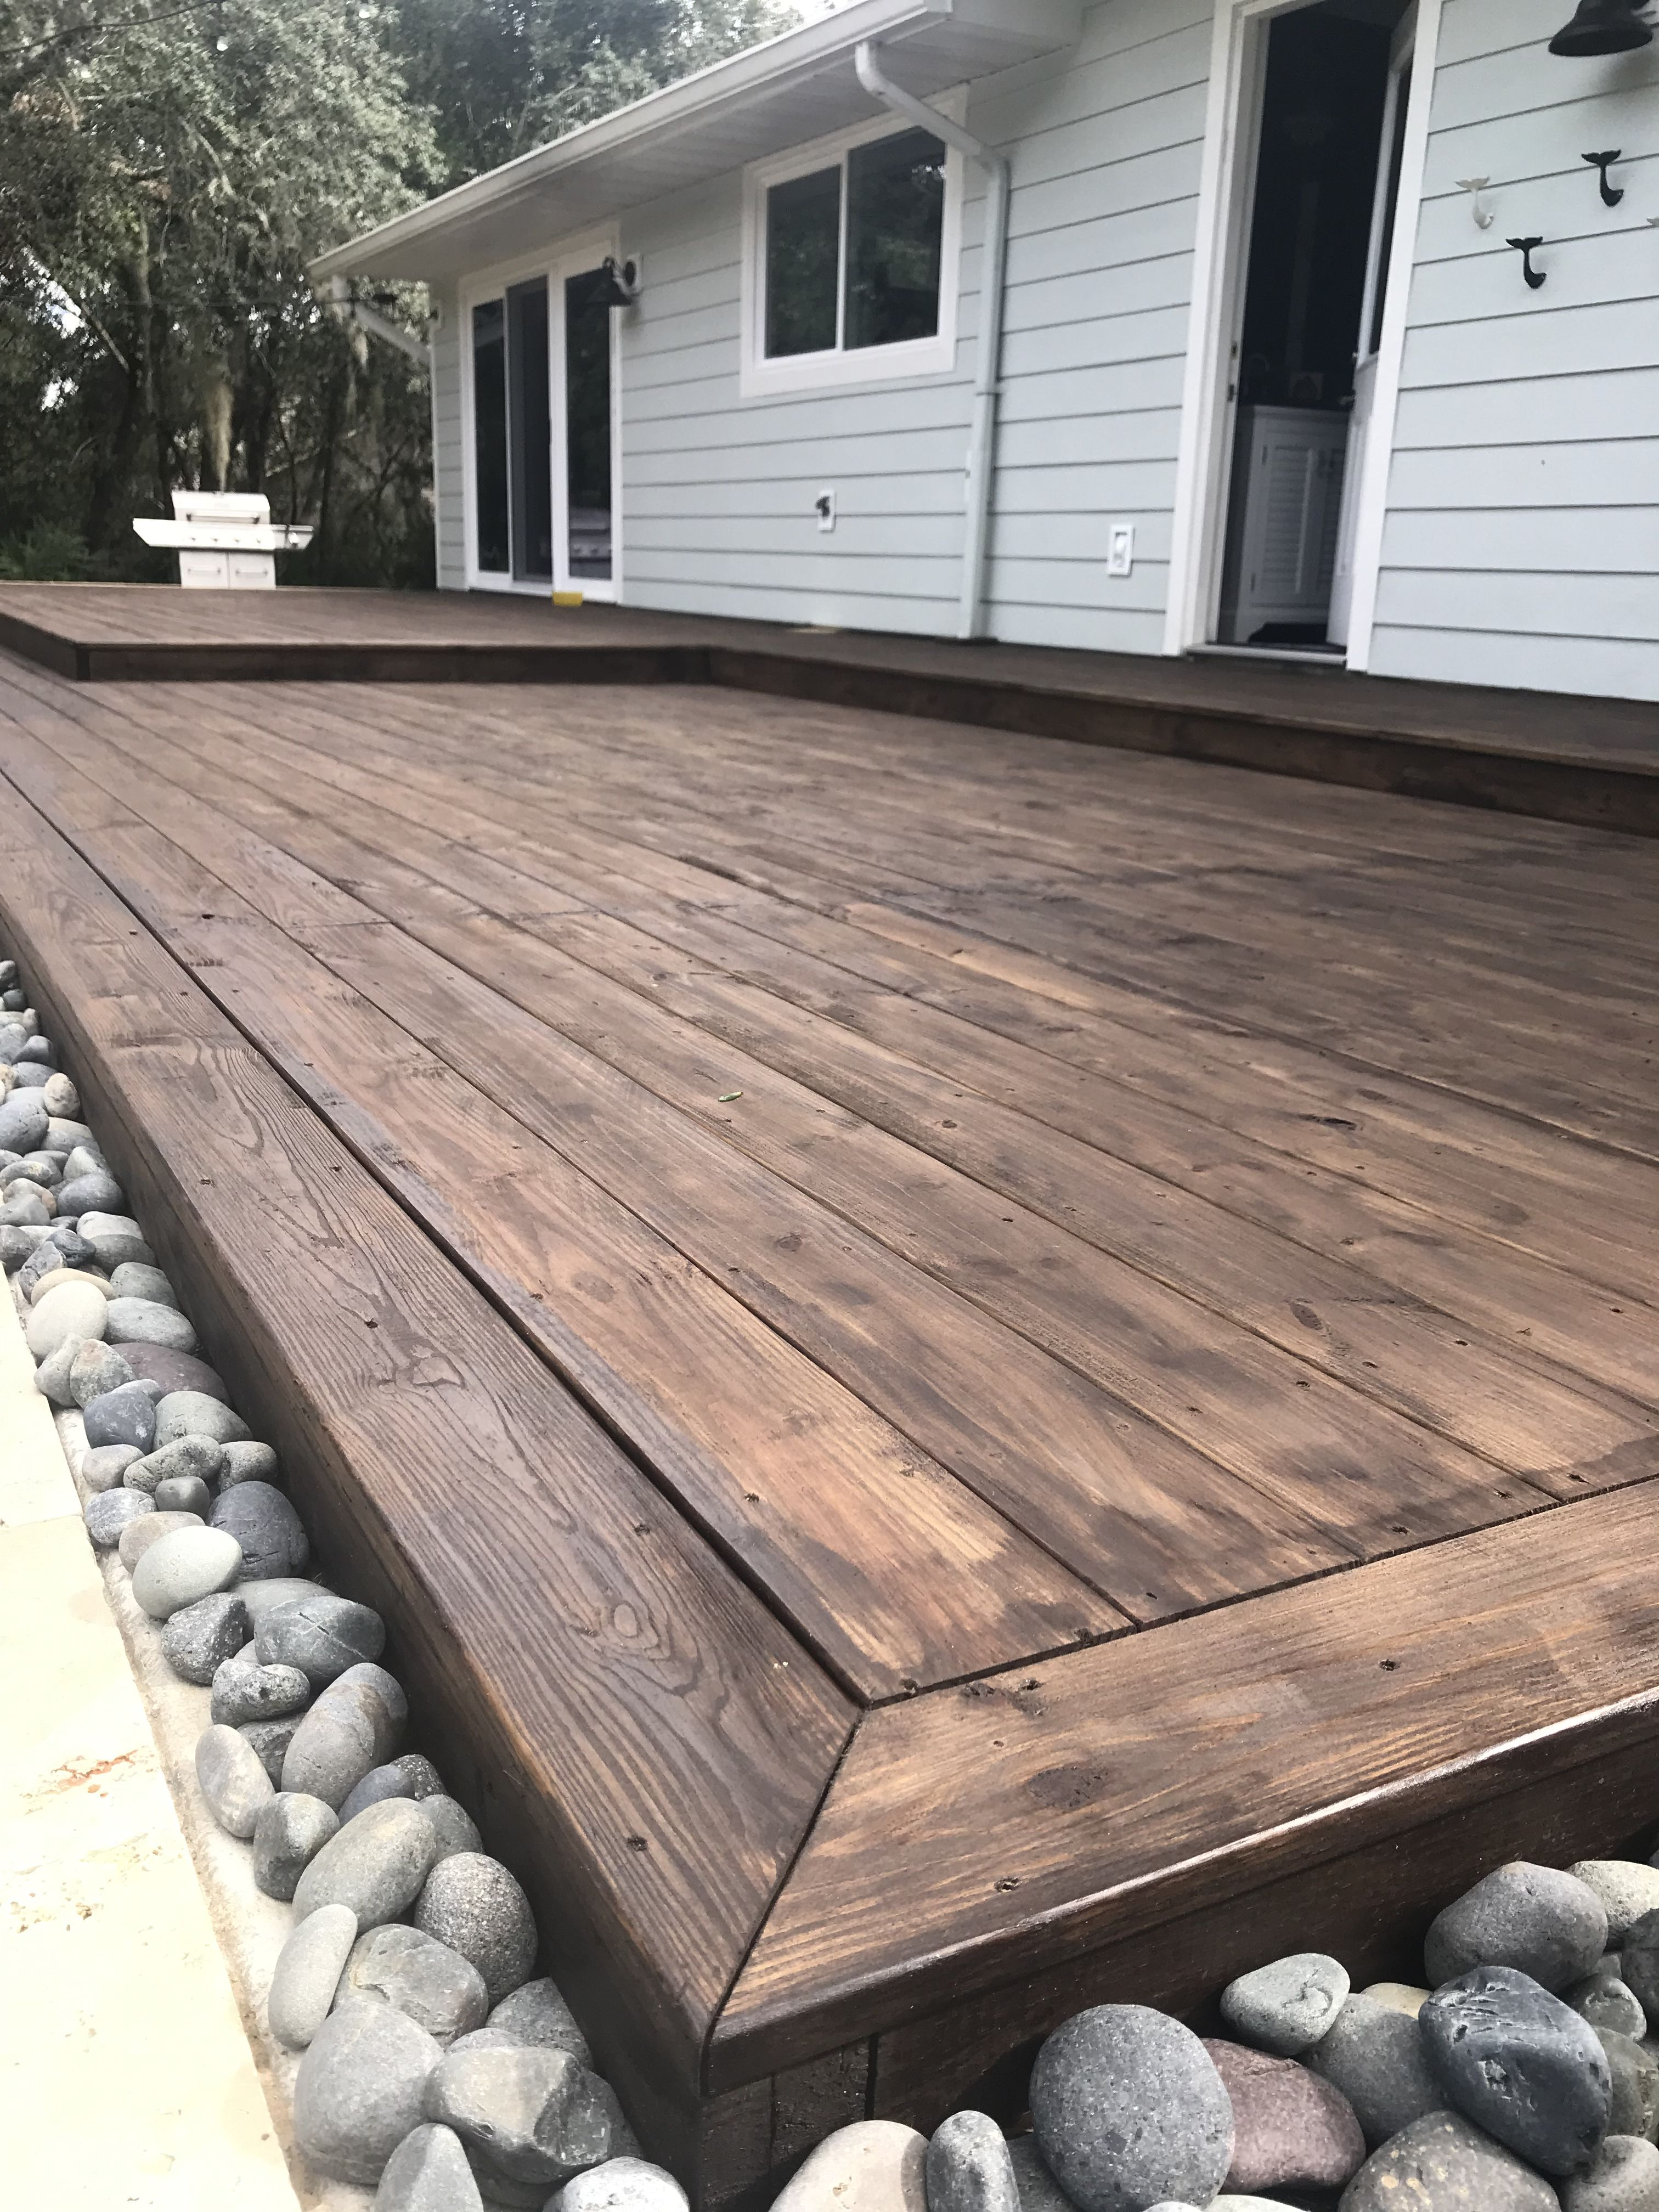 Wood Deck With Mexican Beach Pebbles Stained Deck Restoration Patio Deck Designs Concrete Patio Designs